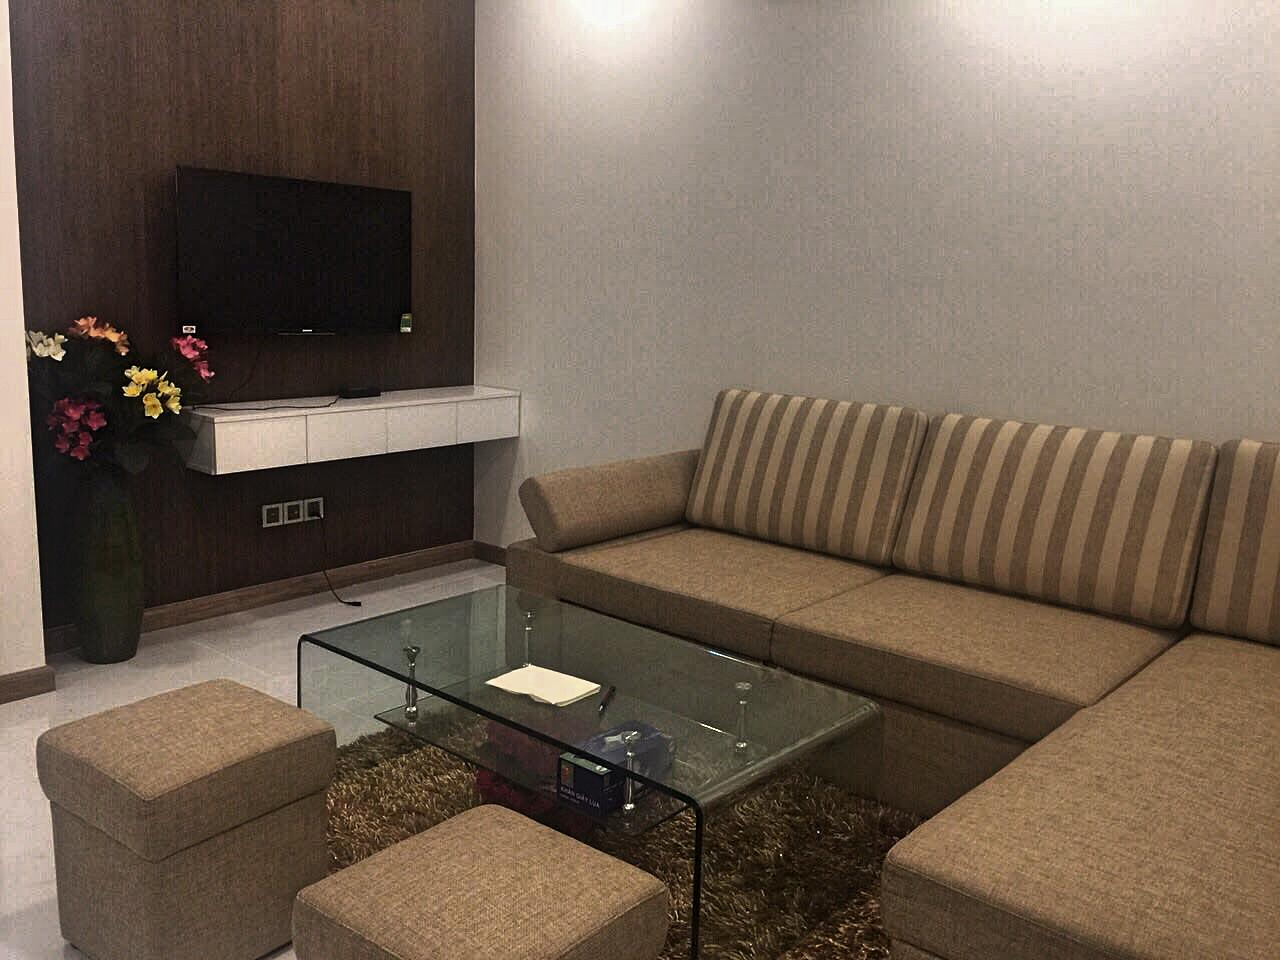 vinhomes central park apartment for rent in binh thanh district hcmc BT105P917 (1)